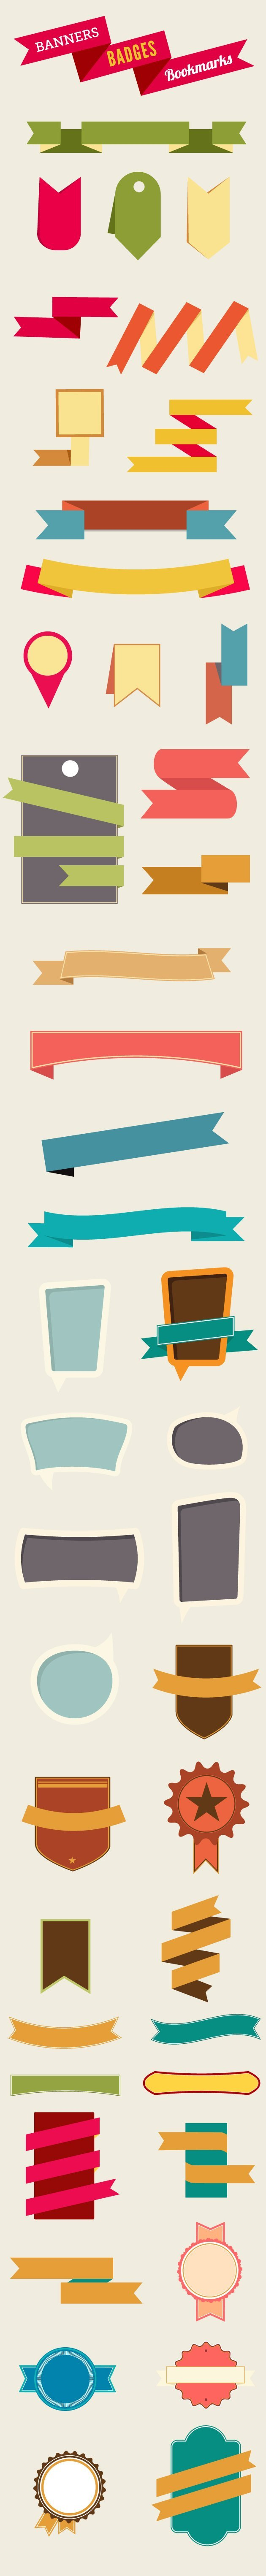 banners-bookmarks-badges-flat-vector-elements-large